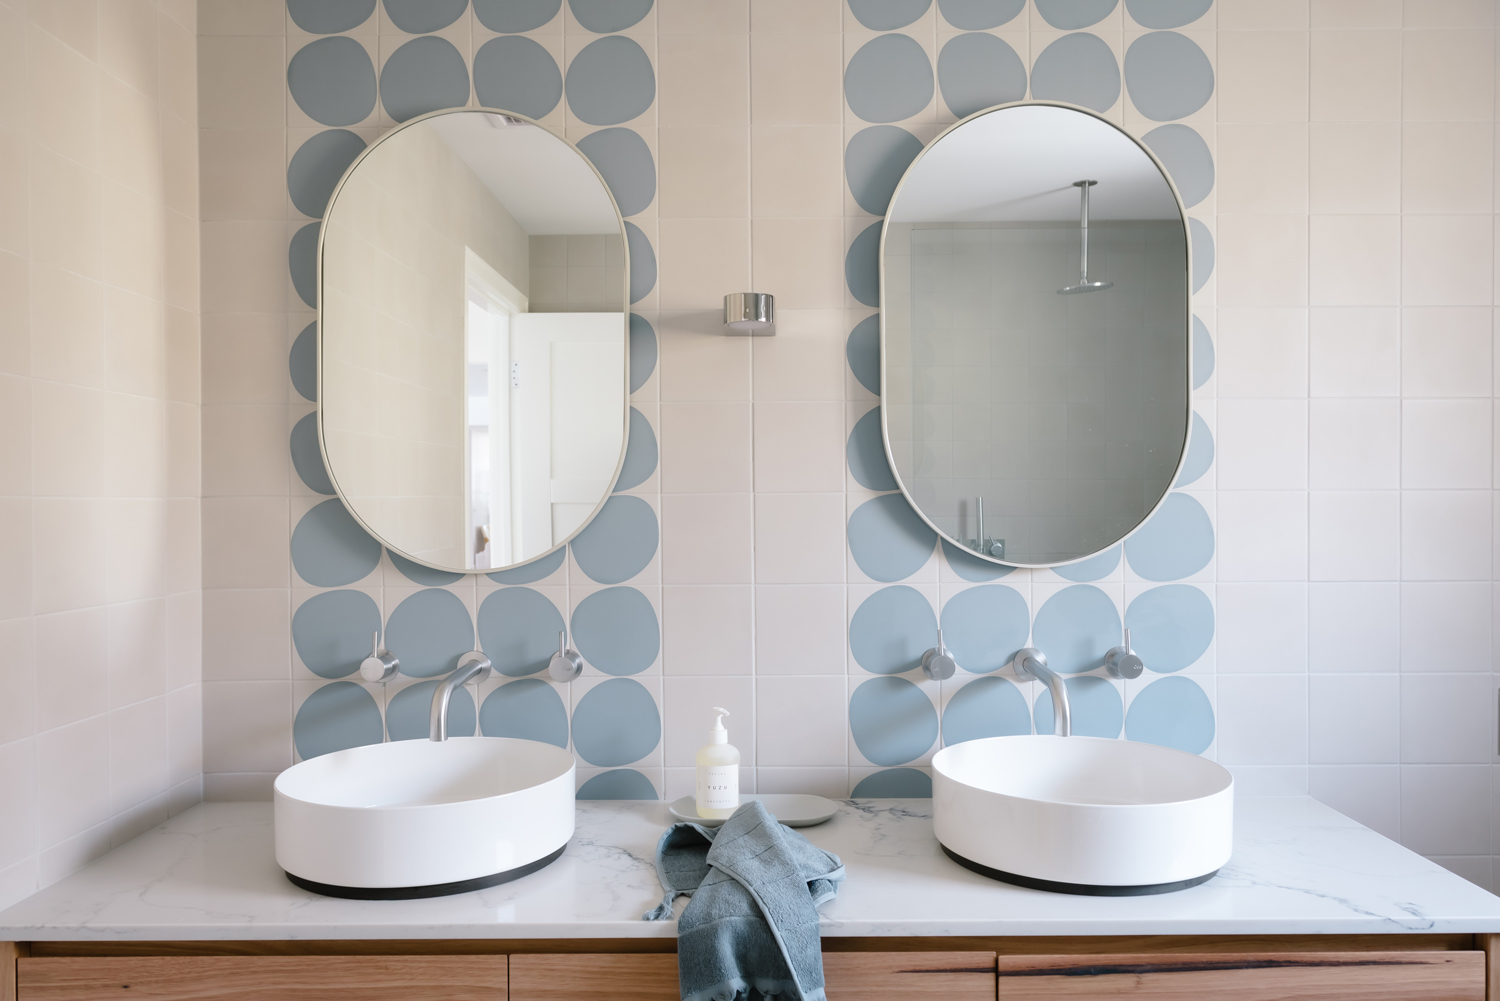 Contemporary bathroom renovation by Dunne Constructions